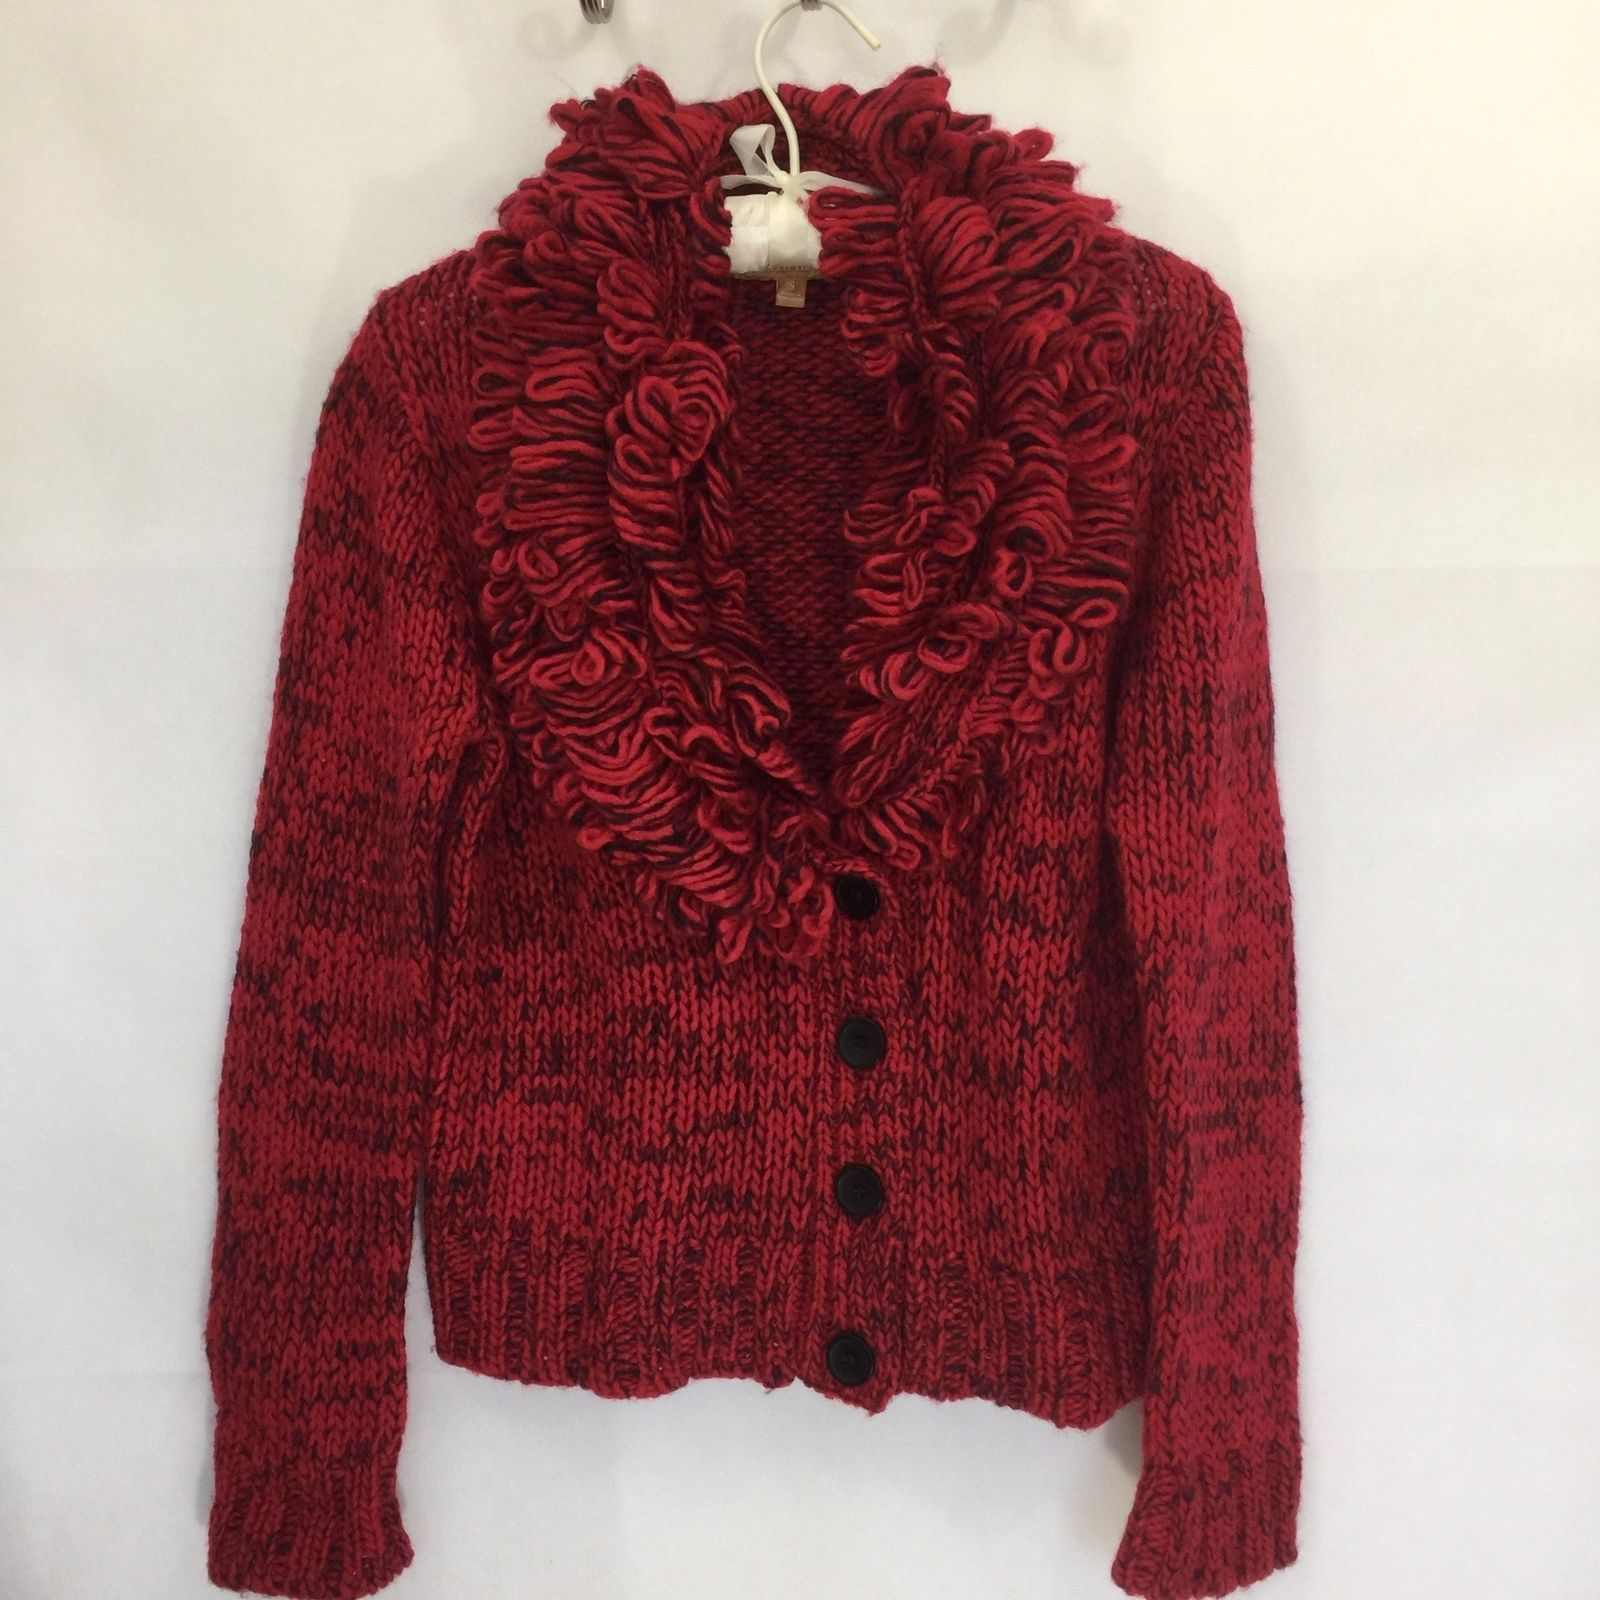 Primary image for Ellen Tracy Women S Wool Blend Sweater Cardigan Fringe Collar Chunky Knit Button